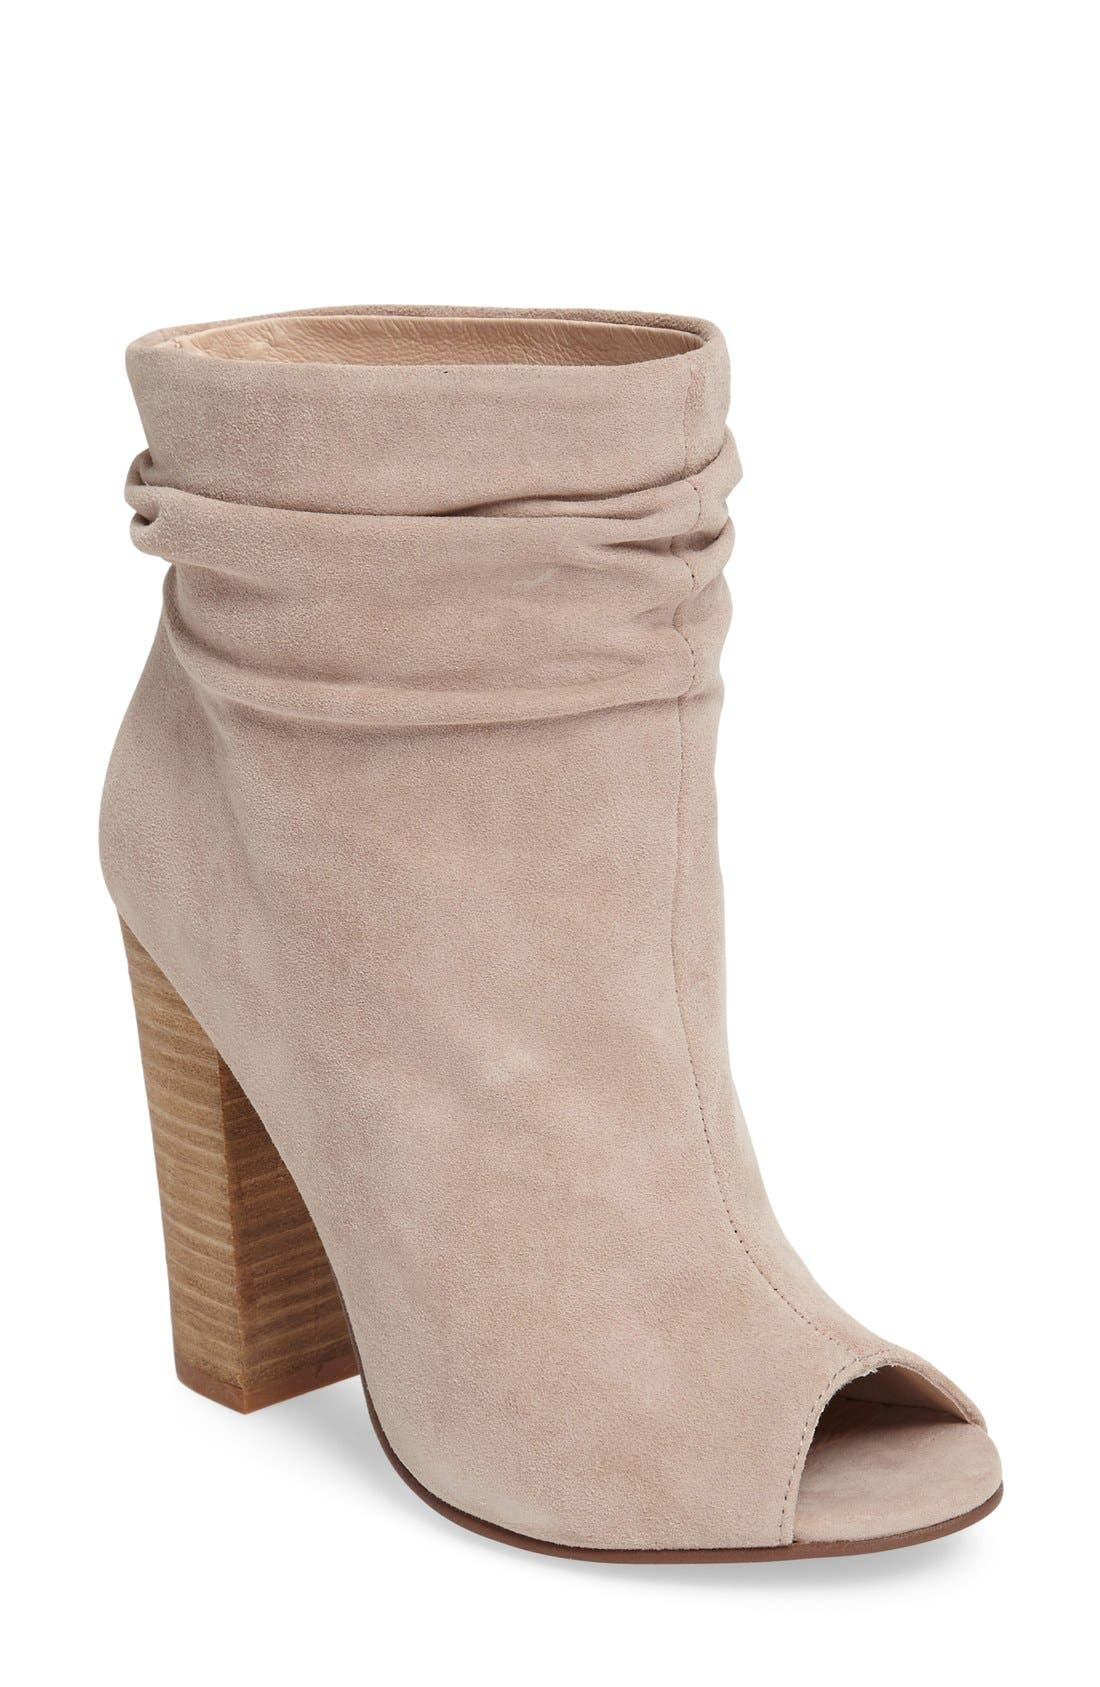 'Laurel' Peep Toe Bootie,                             Main thumbnail 2, color,